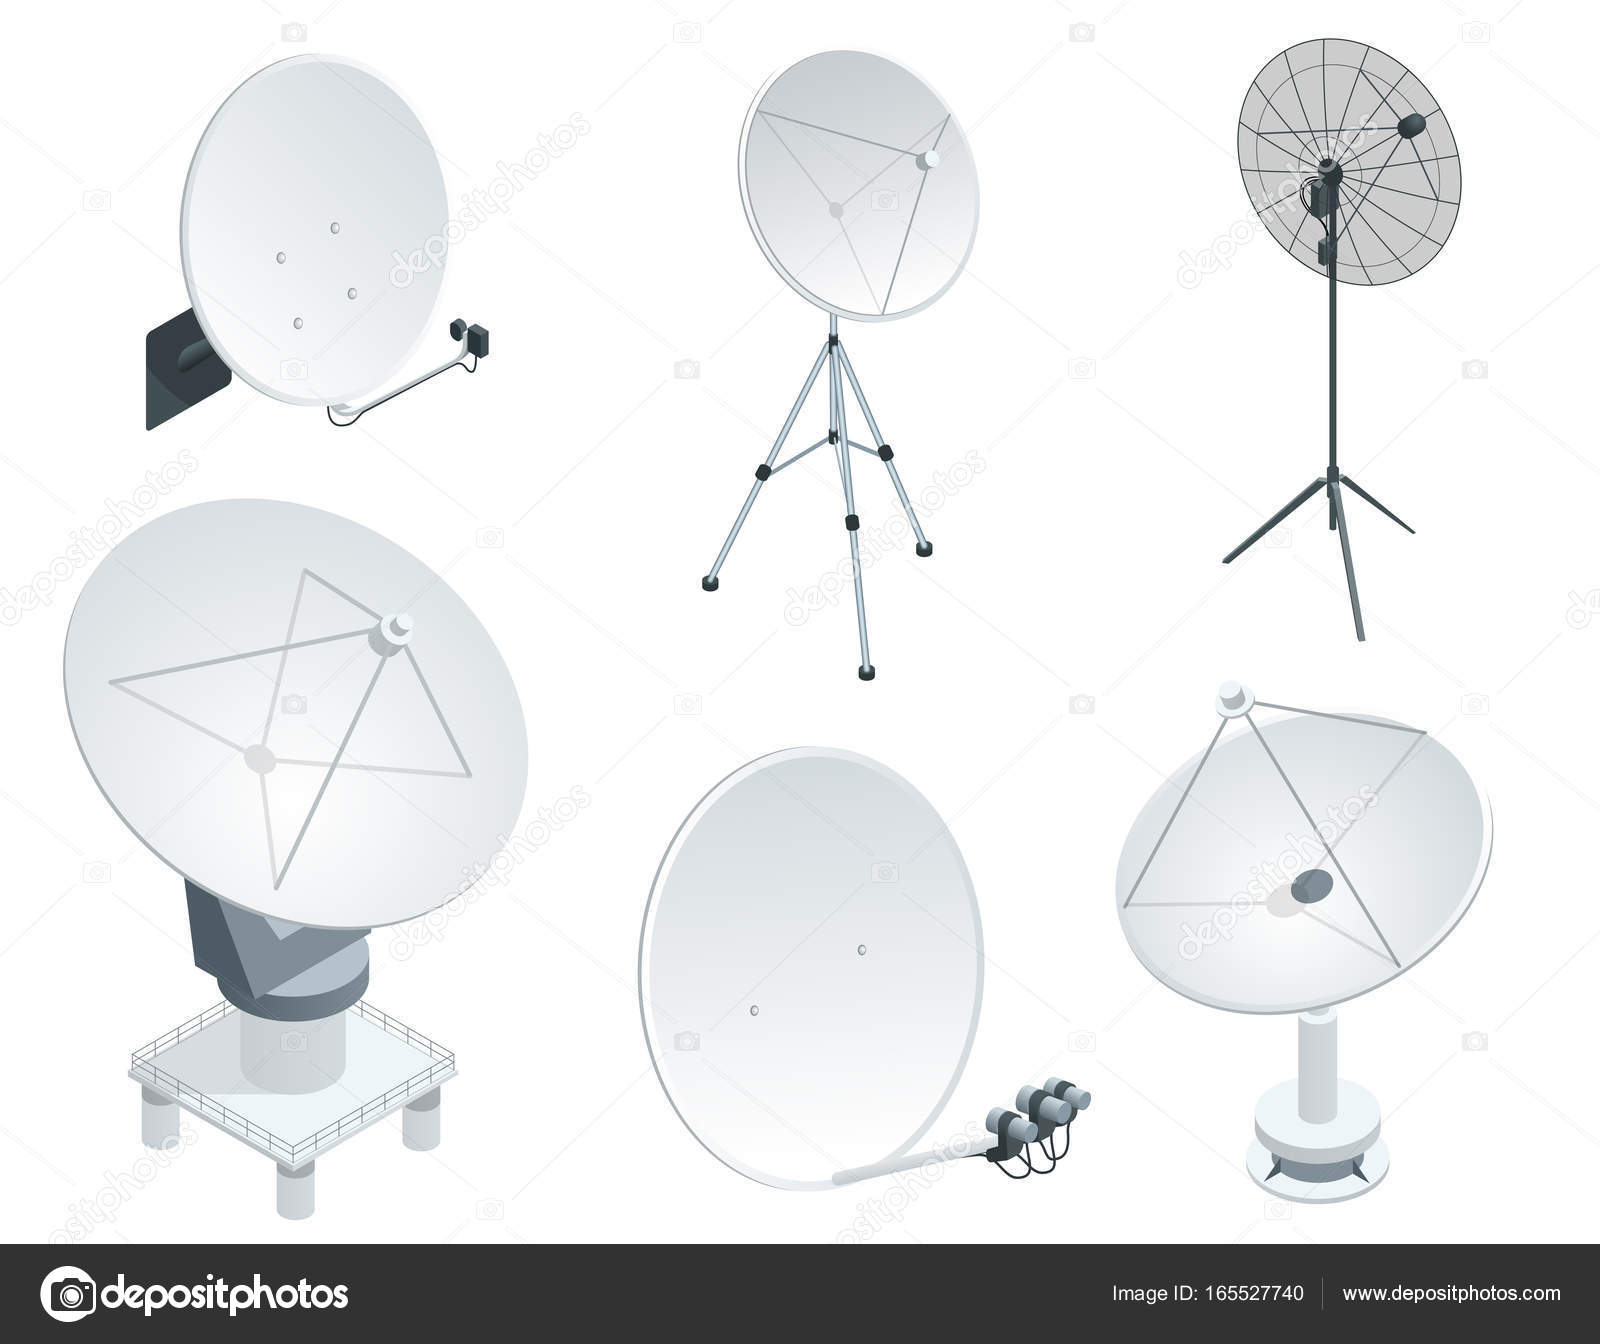 hight resolution of isometric set satellite dish antennas on white wireless communication equipments flat vector illustration can be used for workflow layout game diagram